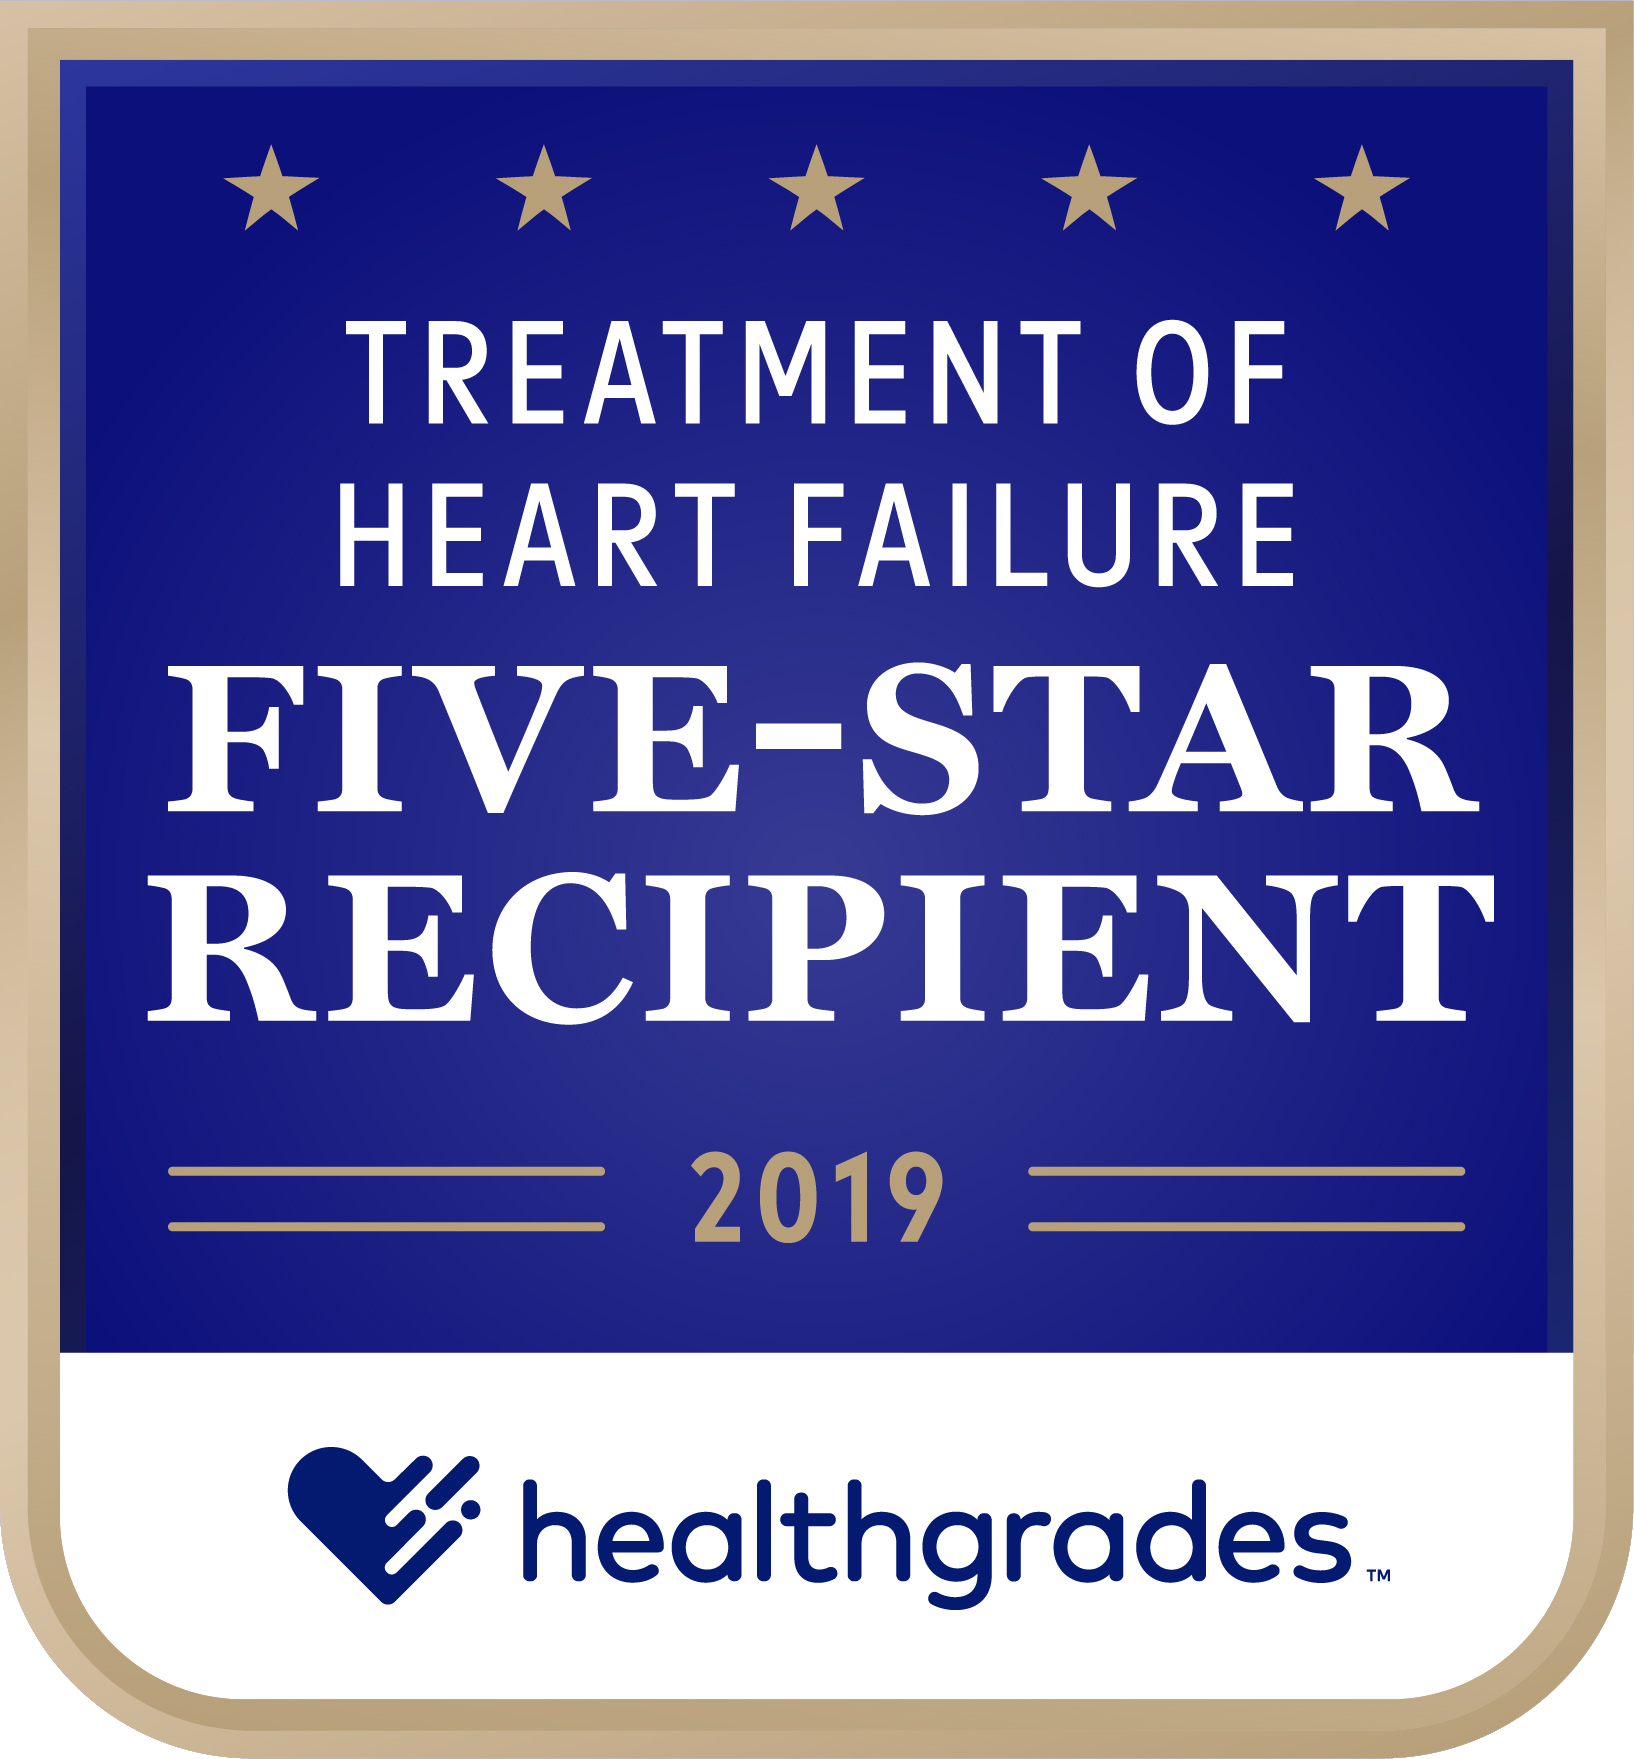 Healthgrades Five-Star Recipient for Treatment of Heart Failure